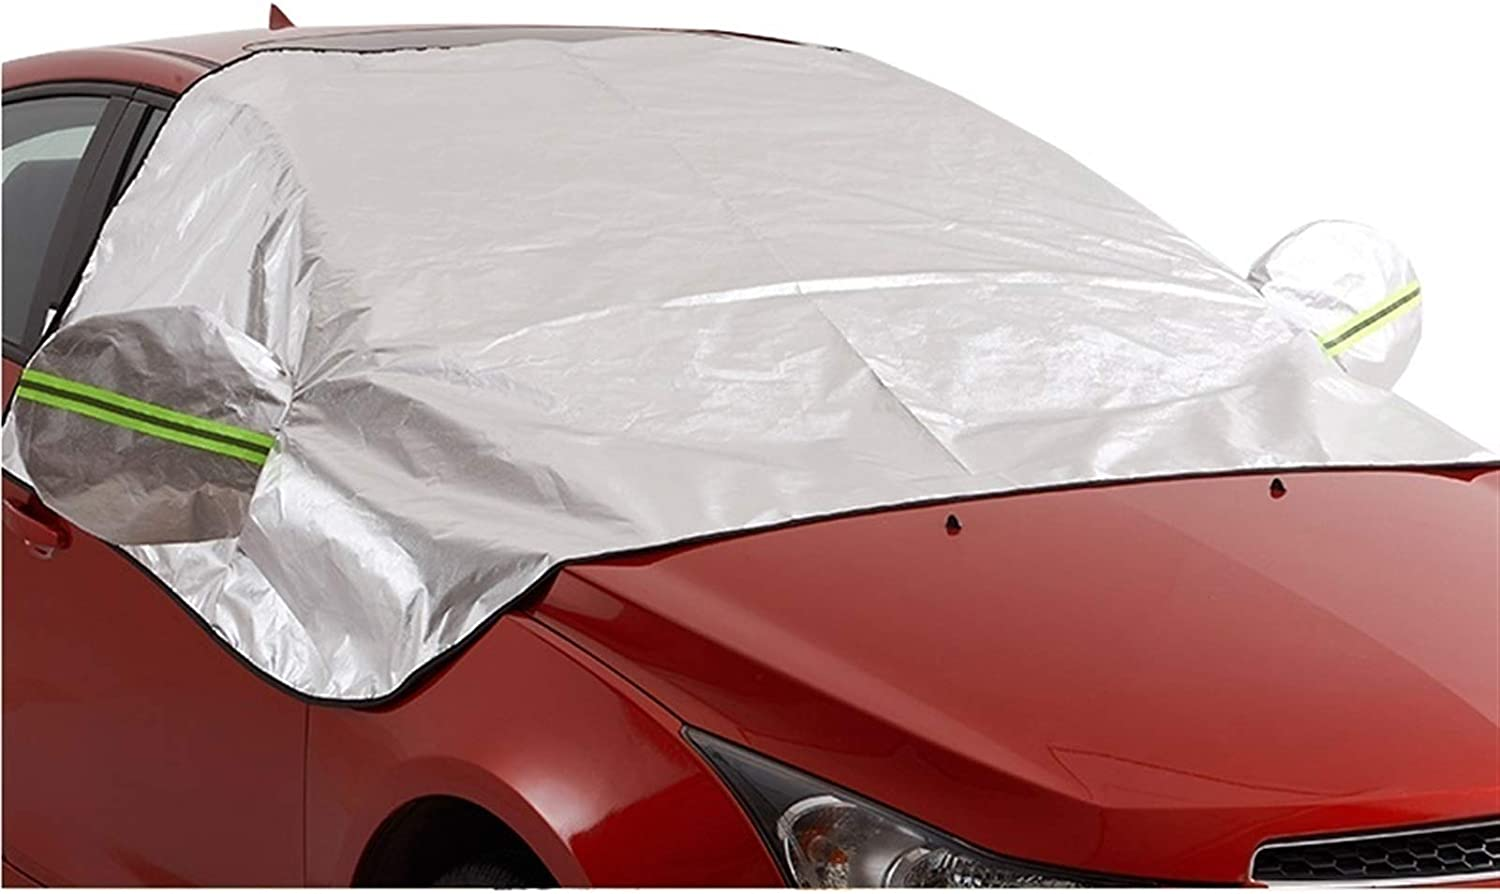 BACKJIA Car Cover Windshield Outdoor H Durable Waterproof Recommended Phoenix Mall